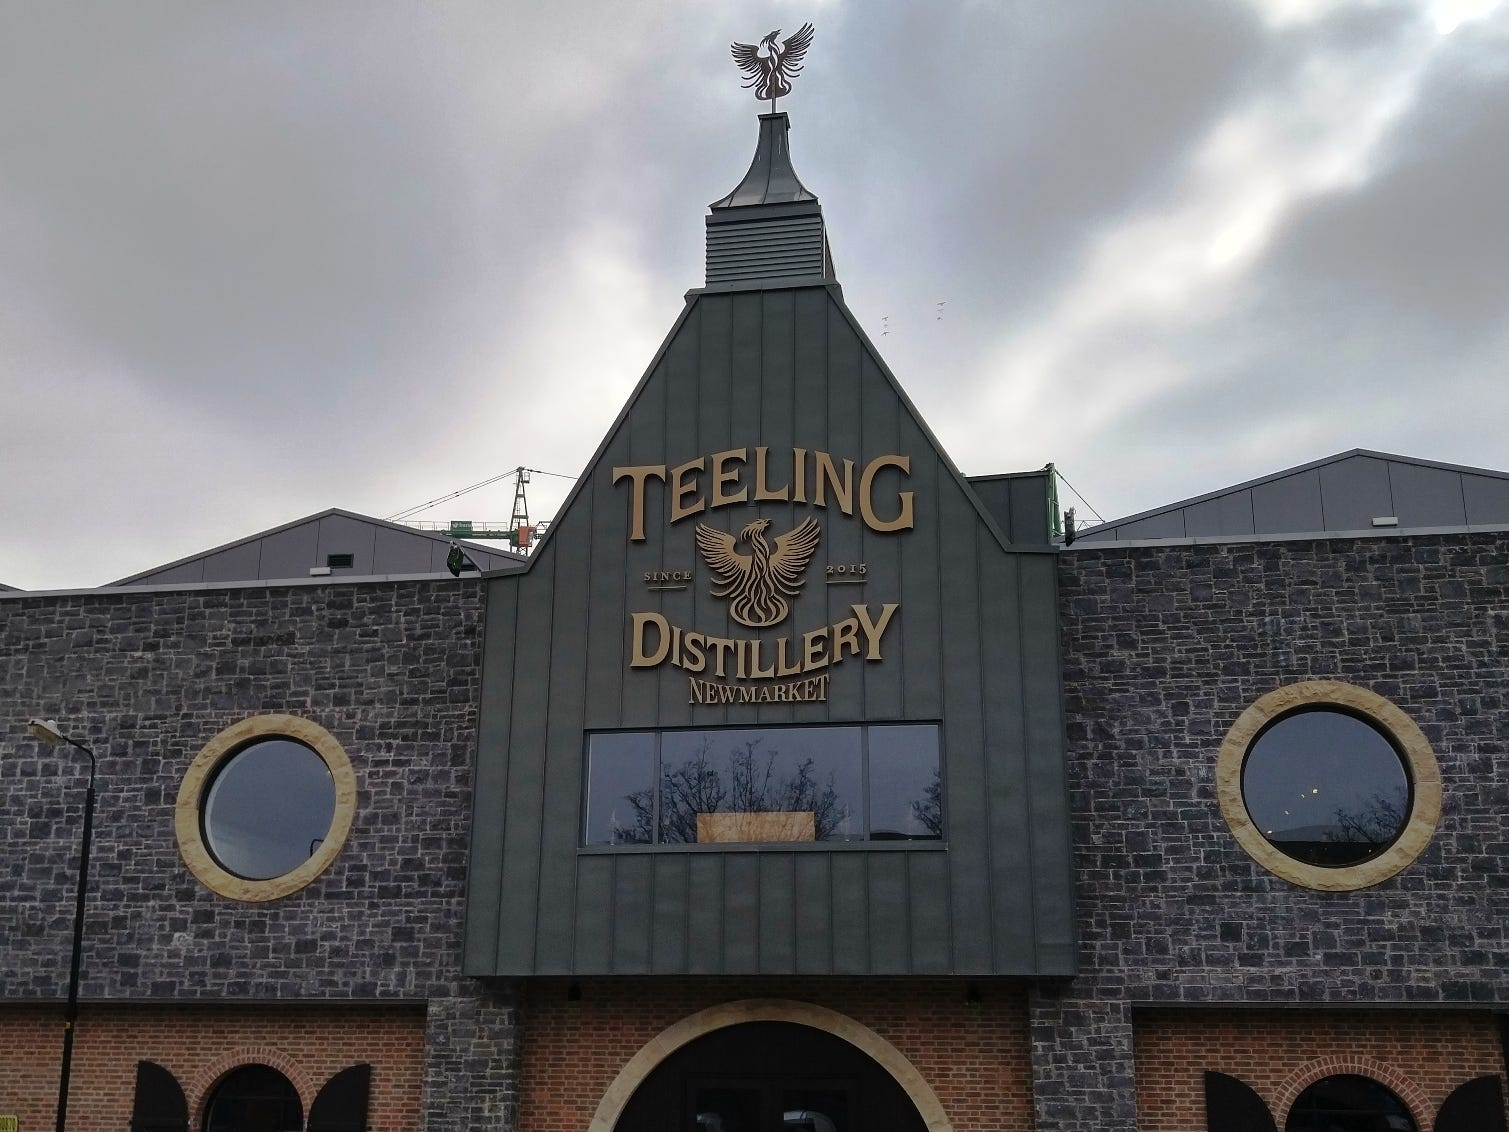 Teeling Distillery was the first to bring distillation back to the city of Dublin, where it had once thrived long ago. Planning for the distillery began in earnest in 2012, and production began in early 2015.